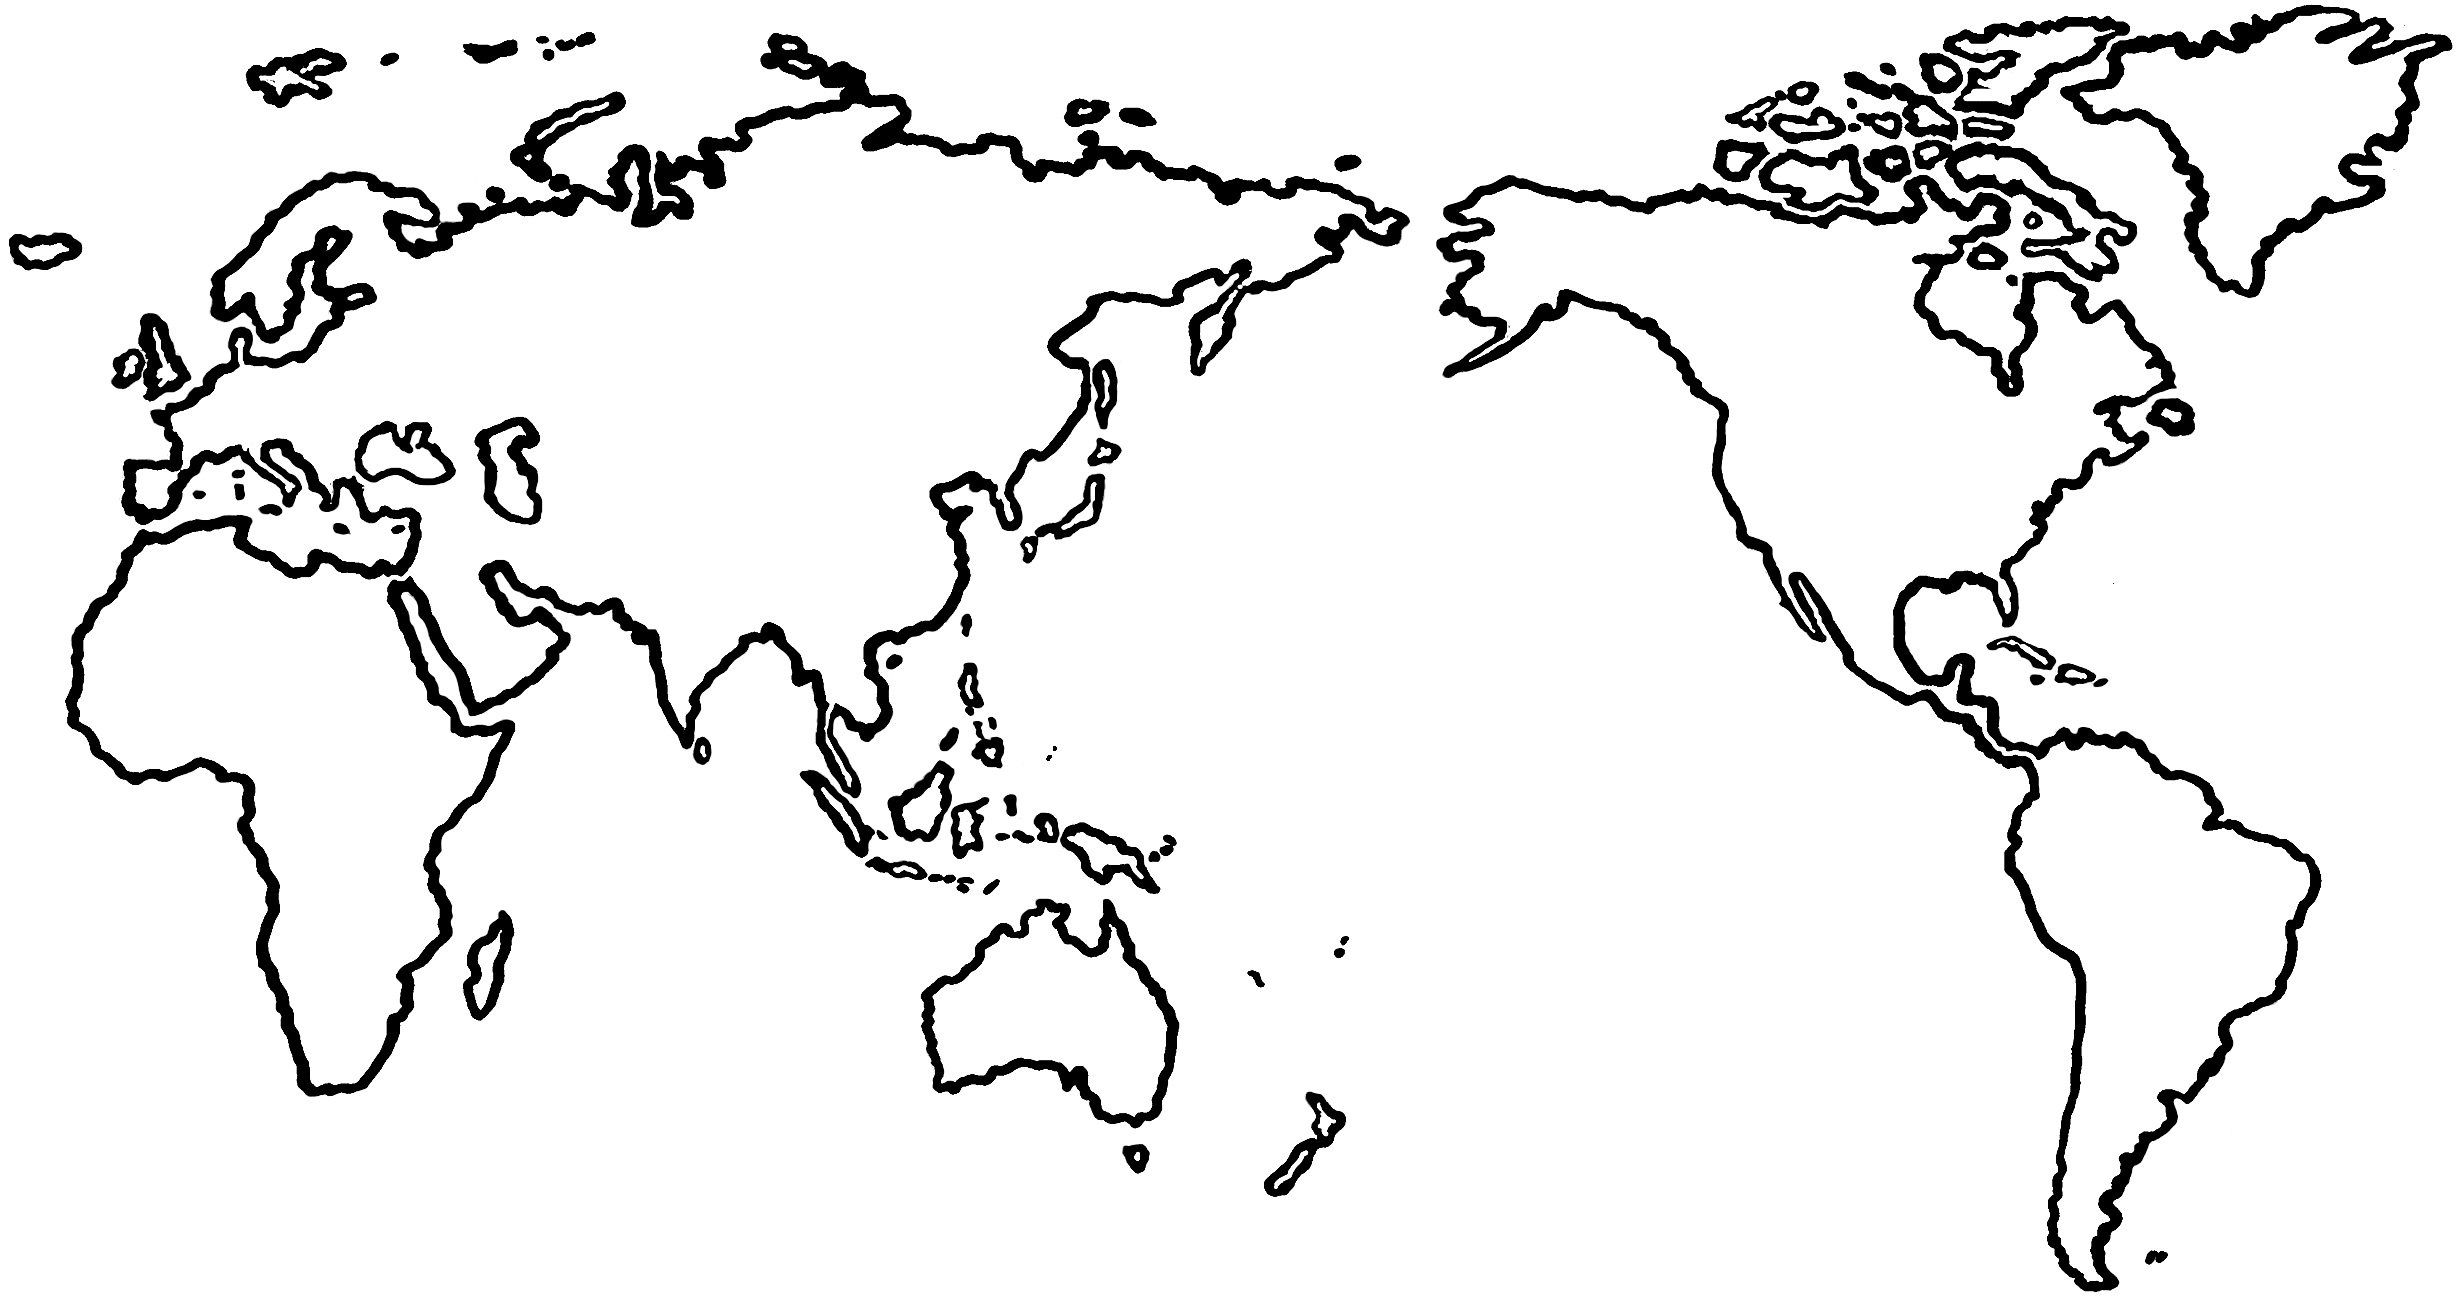 World template clipart clipart freeuse library Flat world map clipart kid - ClipartBarn clipart freeuse library